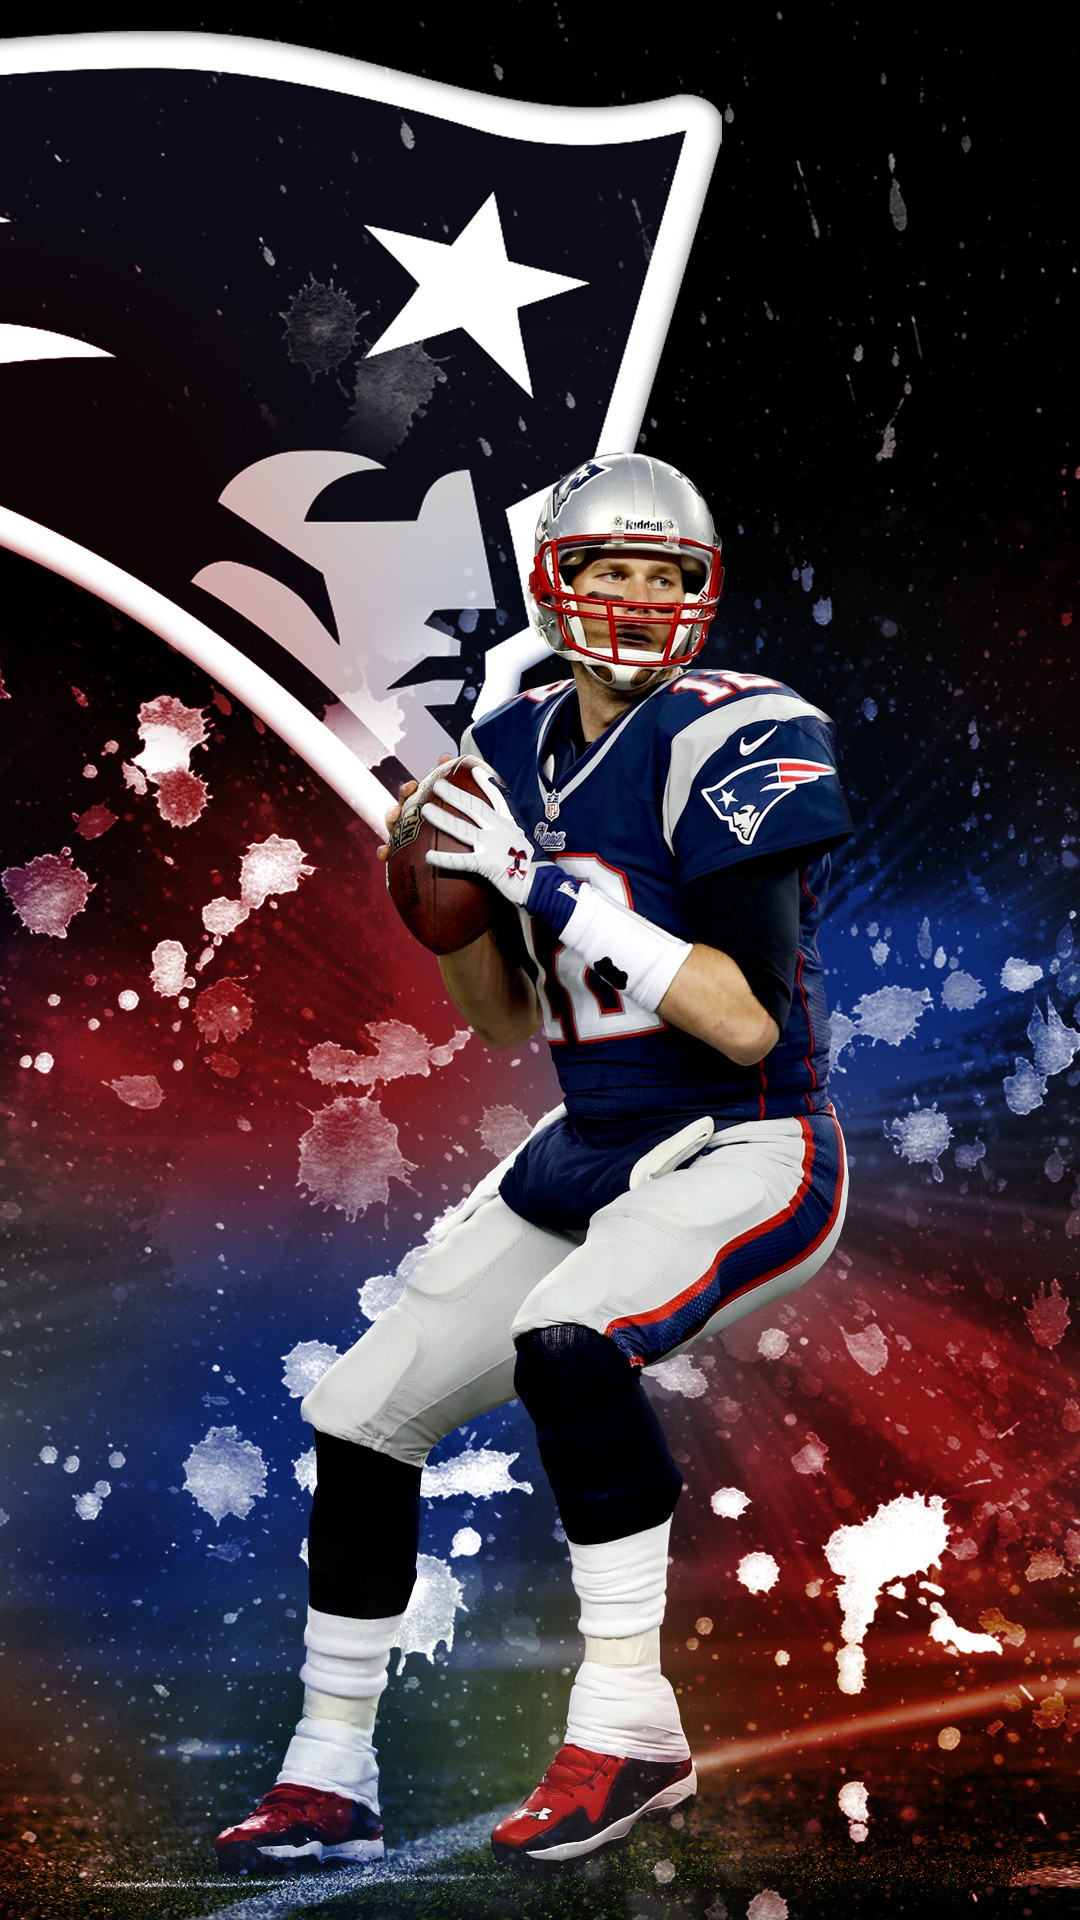 old patriots logo wallpaper 60 images